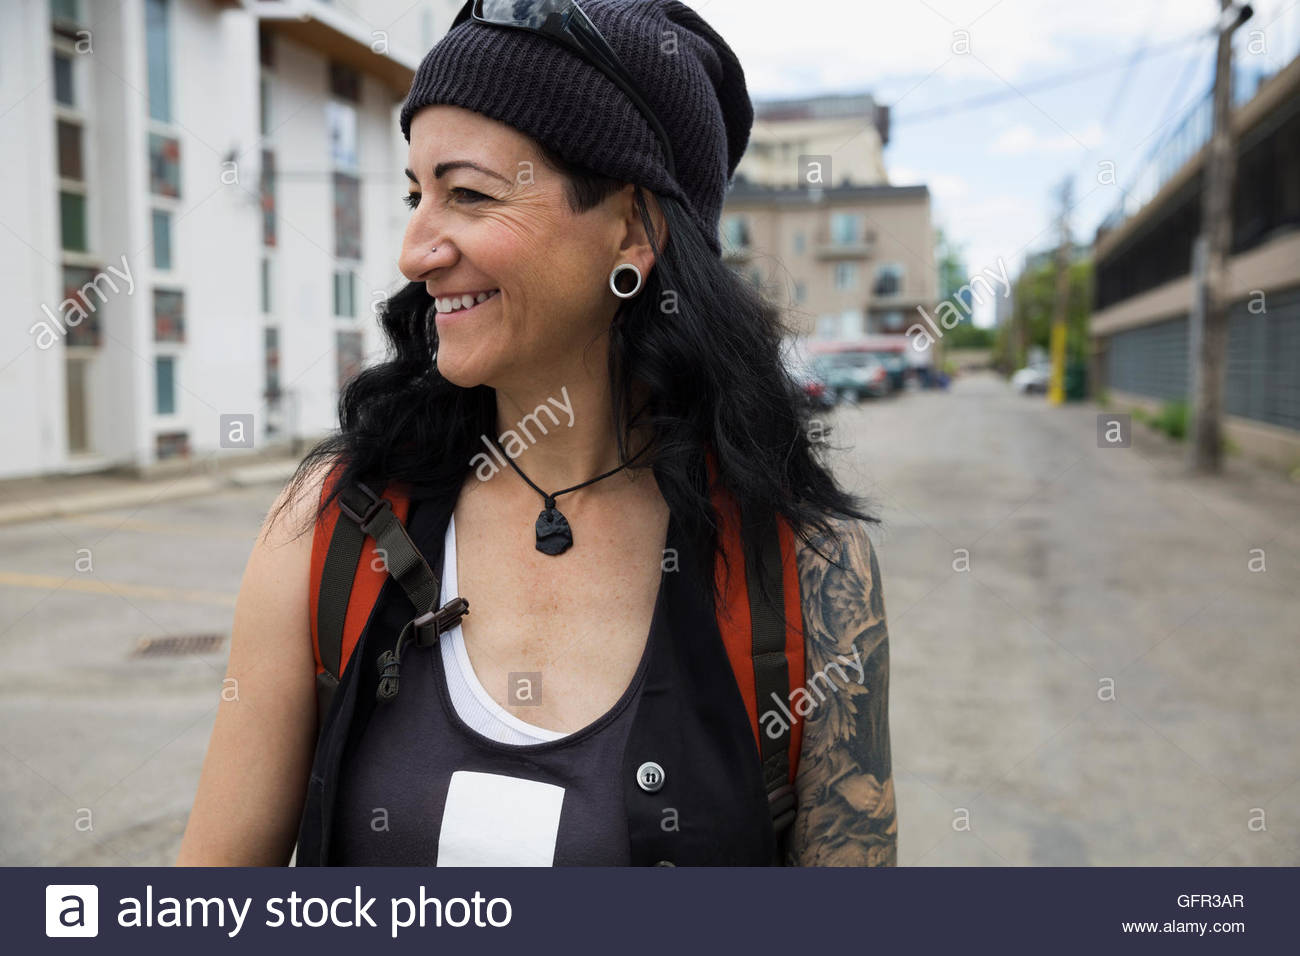 Cool mature woman smiling in urban alley - Stock Image